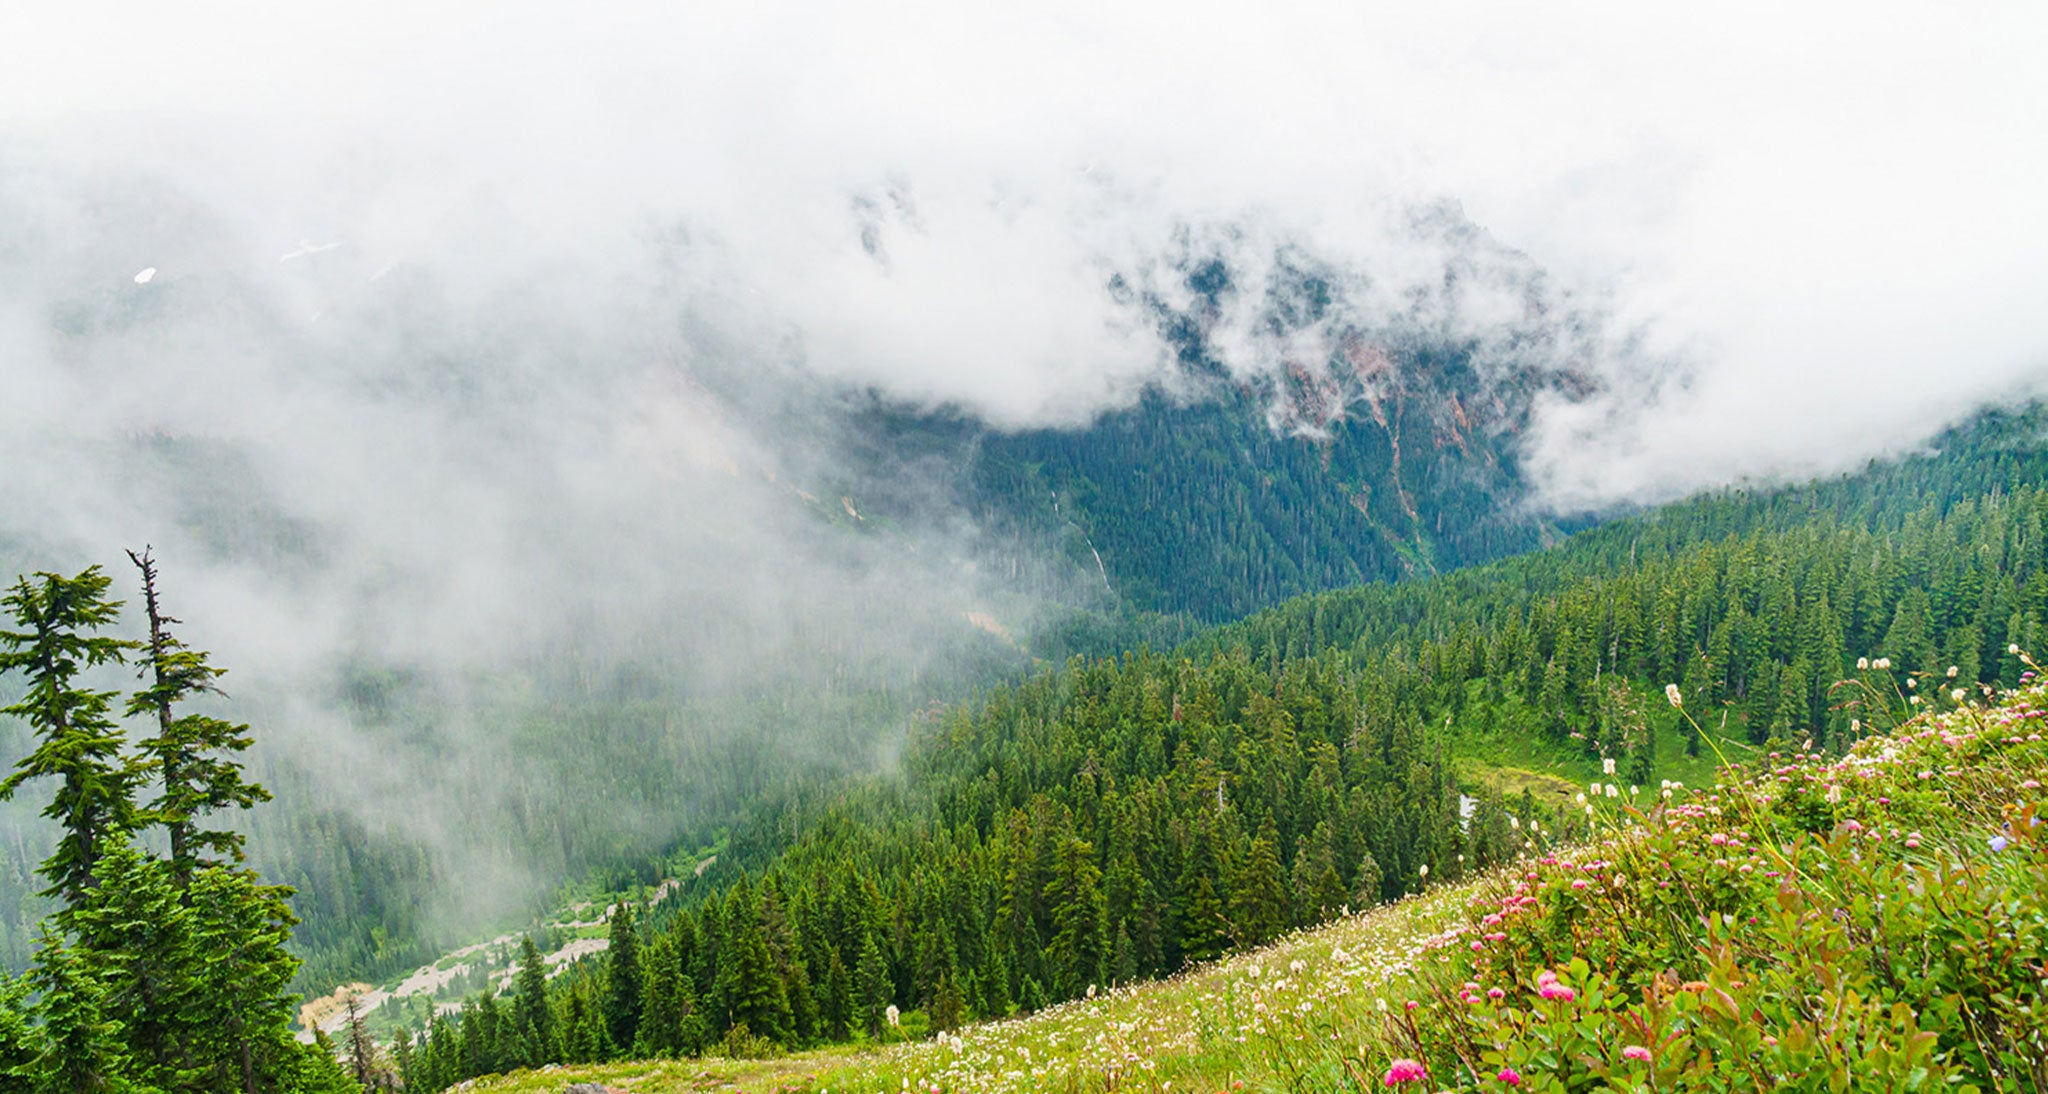 Featureless grey base of nimbostratus producing an all day rain in the Glacier Peak Wilderness in the Washington Cascades.